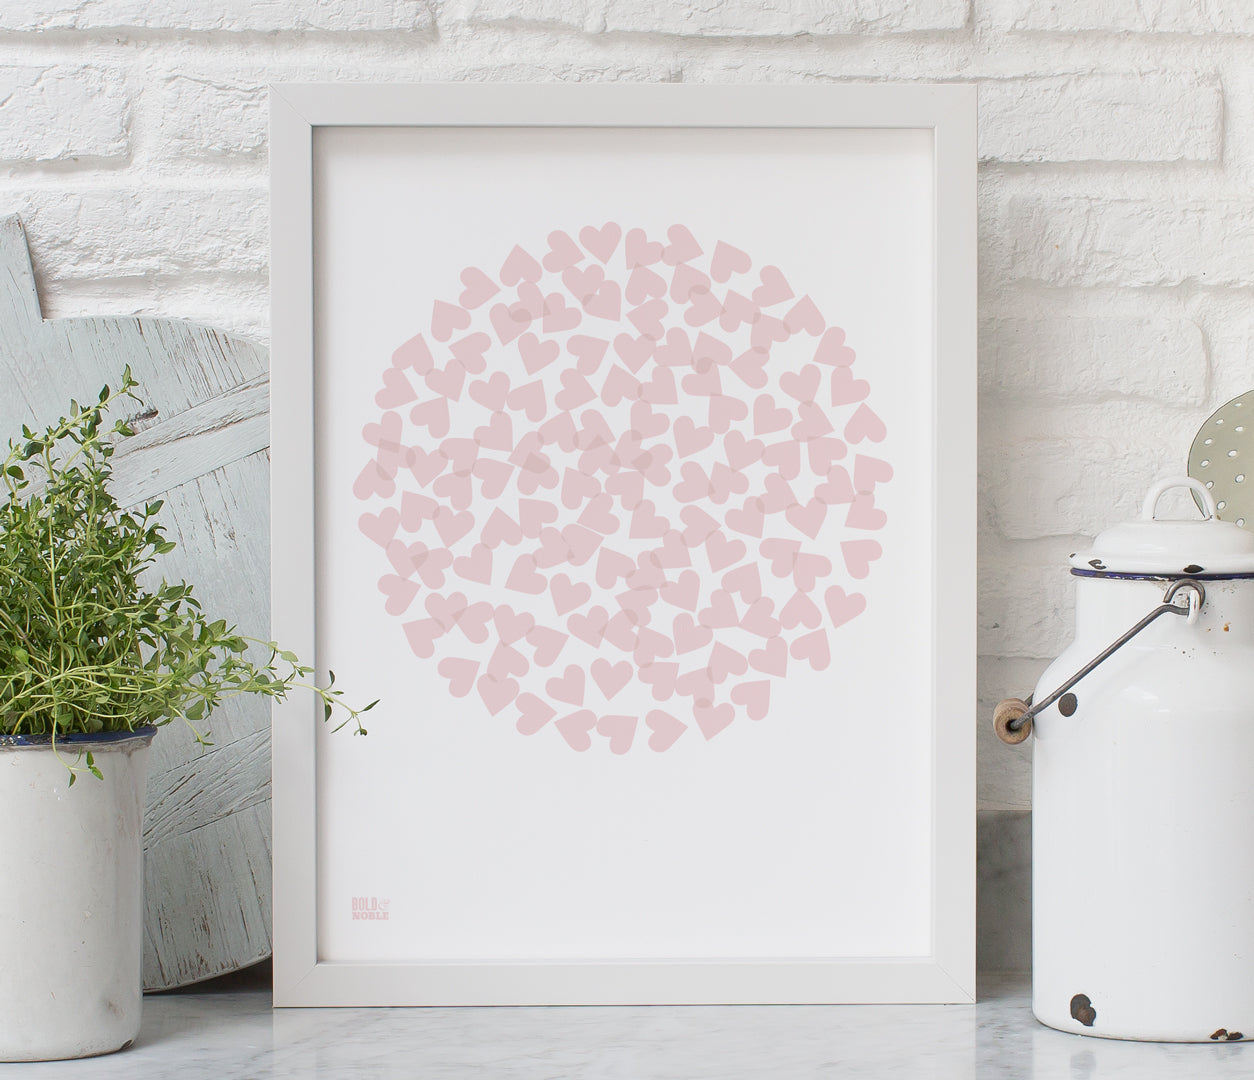 'Confetti Heart Circle' Art Print in Blush Pink